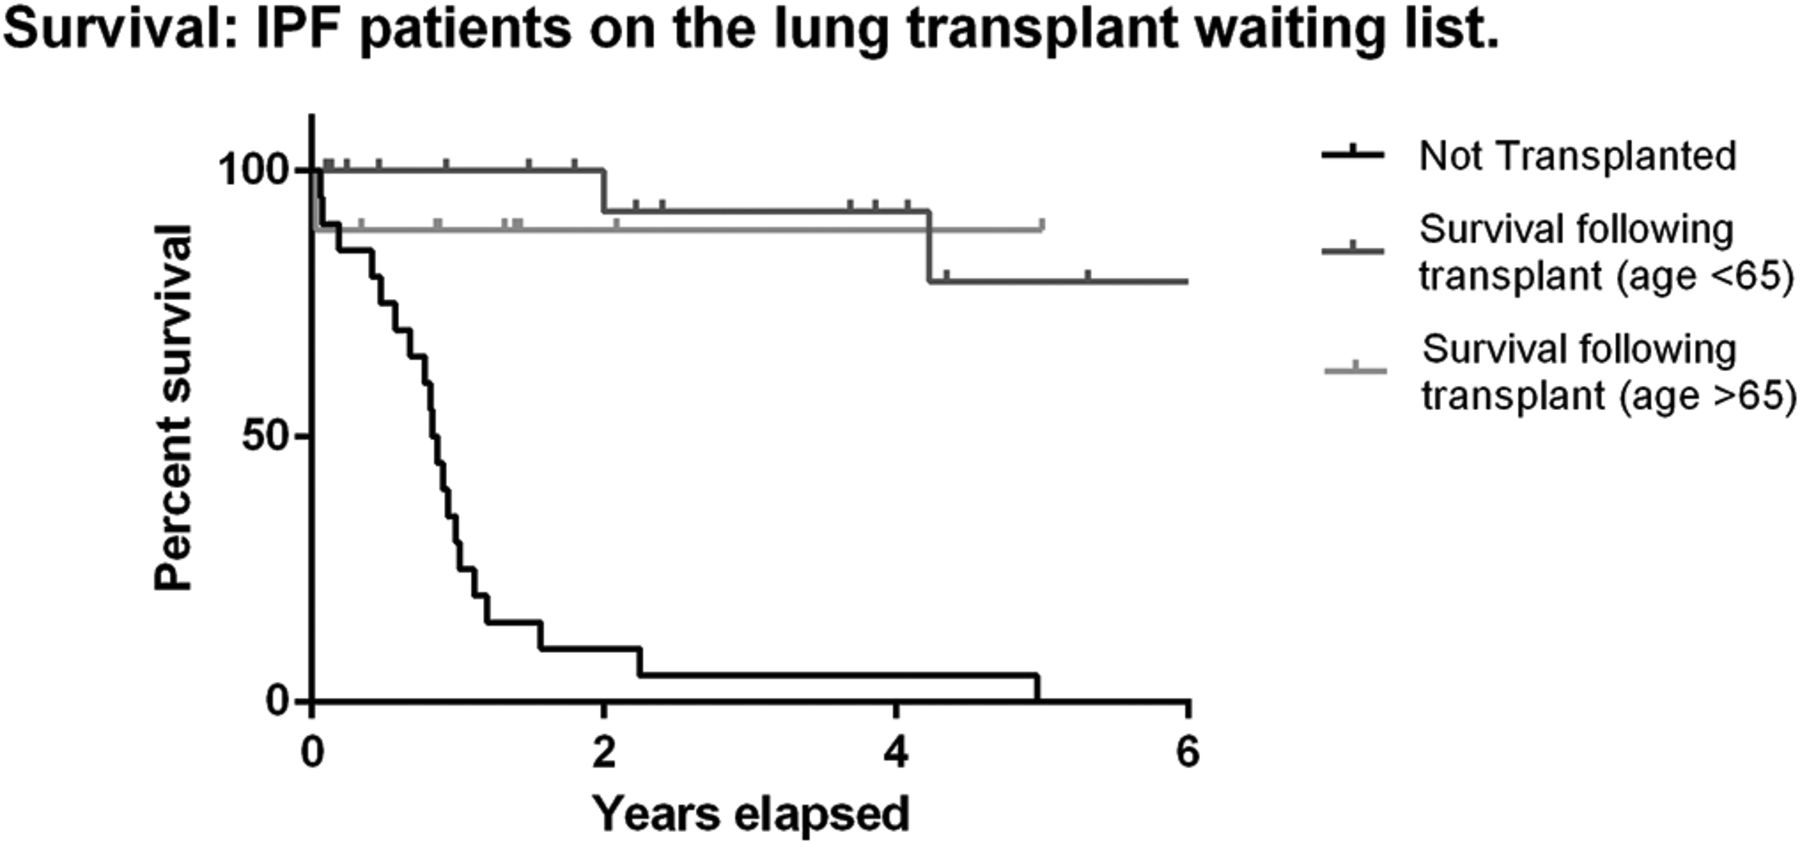 P203 Lung Transplantation And Survival In Idiopathic